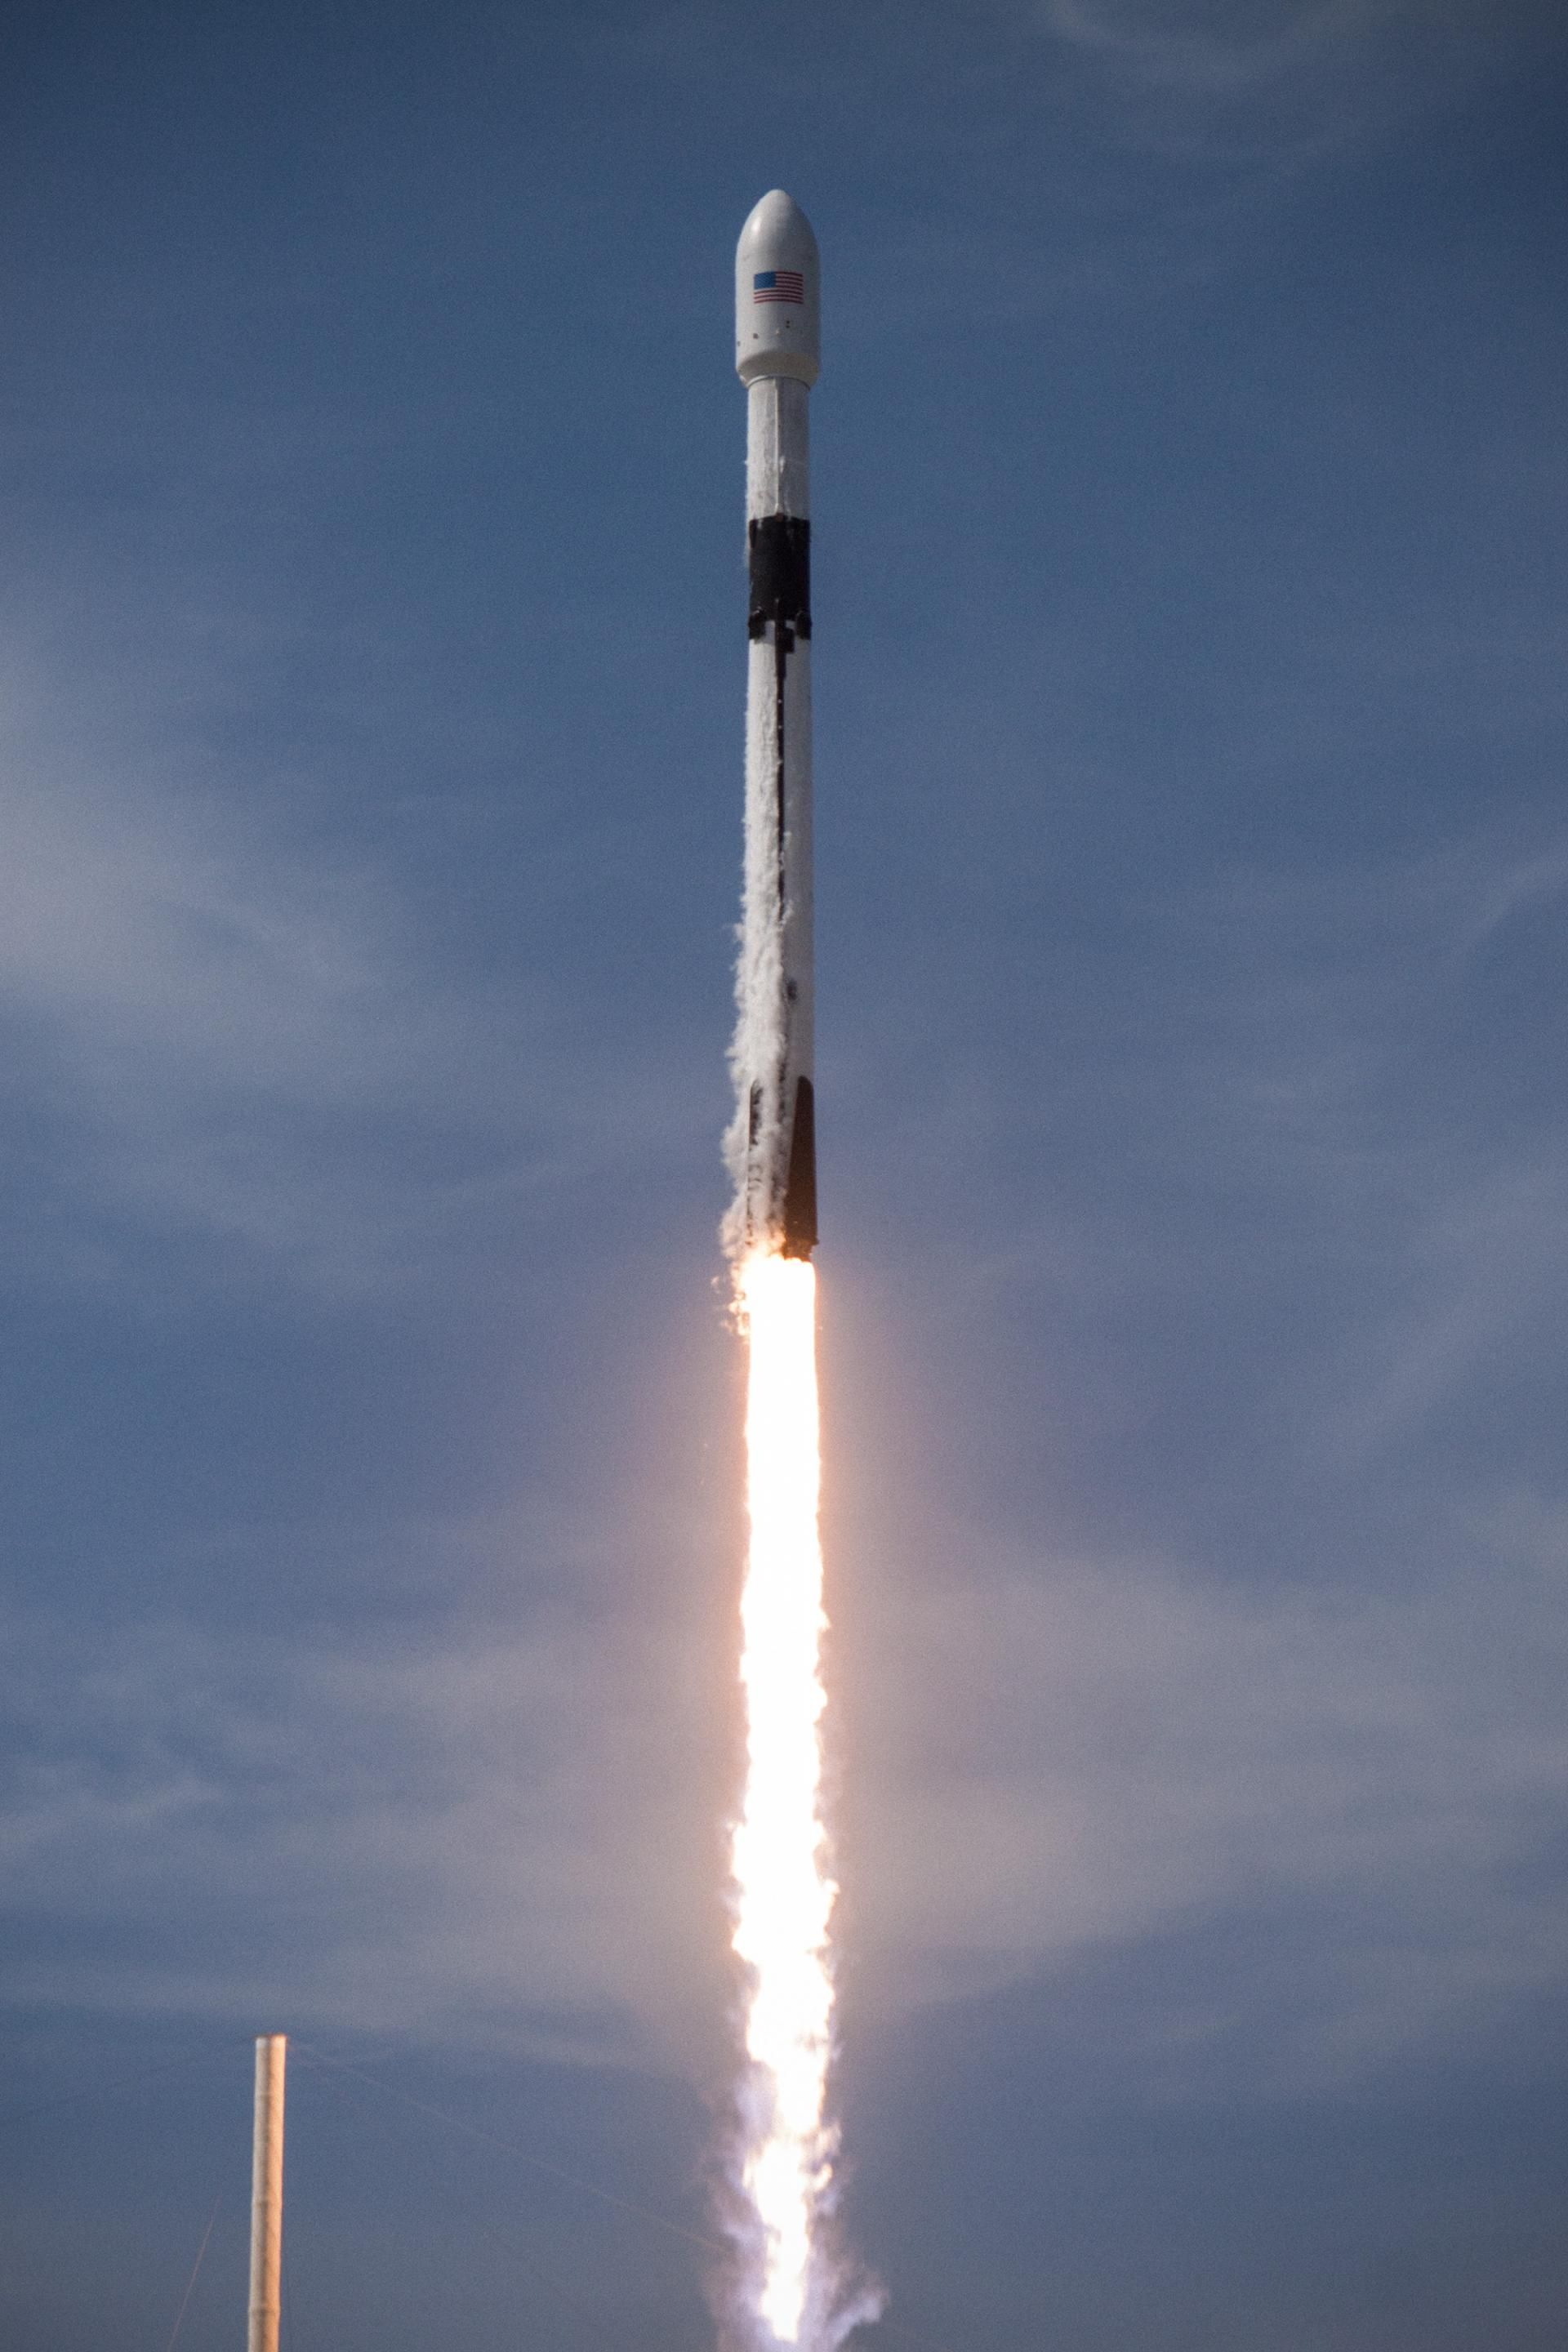 Spacex Launch Of A Falcon 9 Block 5 Amos 17 Spacex Spacex Launch Spacex Falcon 9